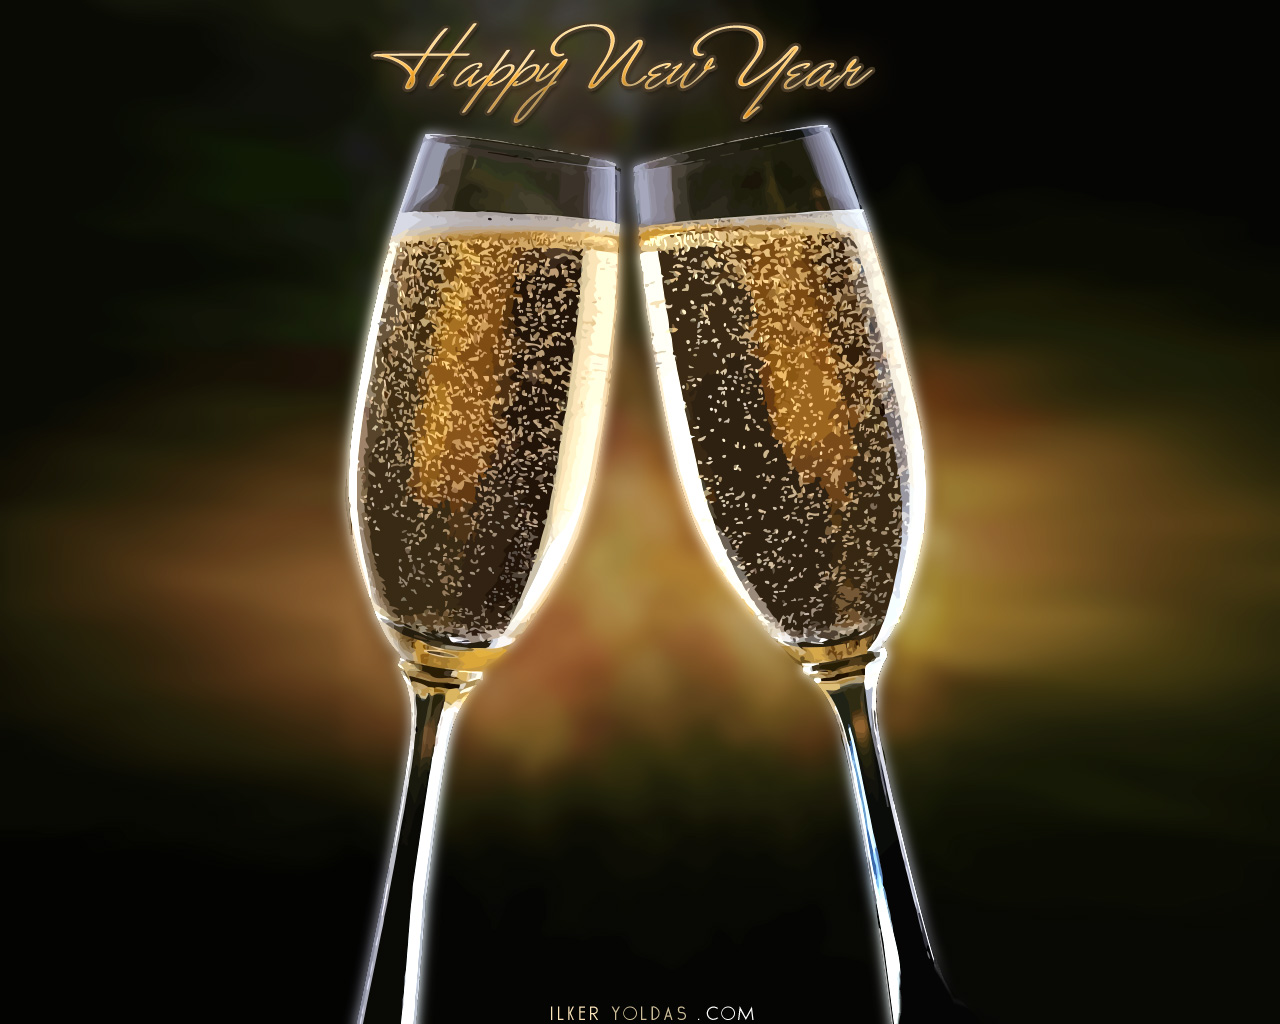 http://2.bp.blogspot.com/_2Ks_Im1Ni8c/TRfijJ5sNBI/AAAAAAAACQE/IjGn819Rzog/s1600/Happy-New-Year-Wallpaper.jpg